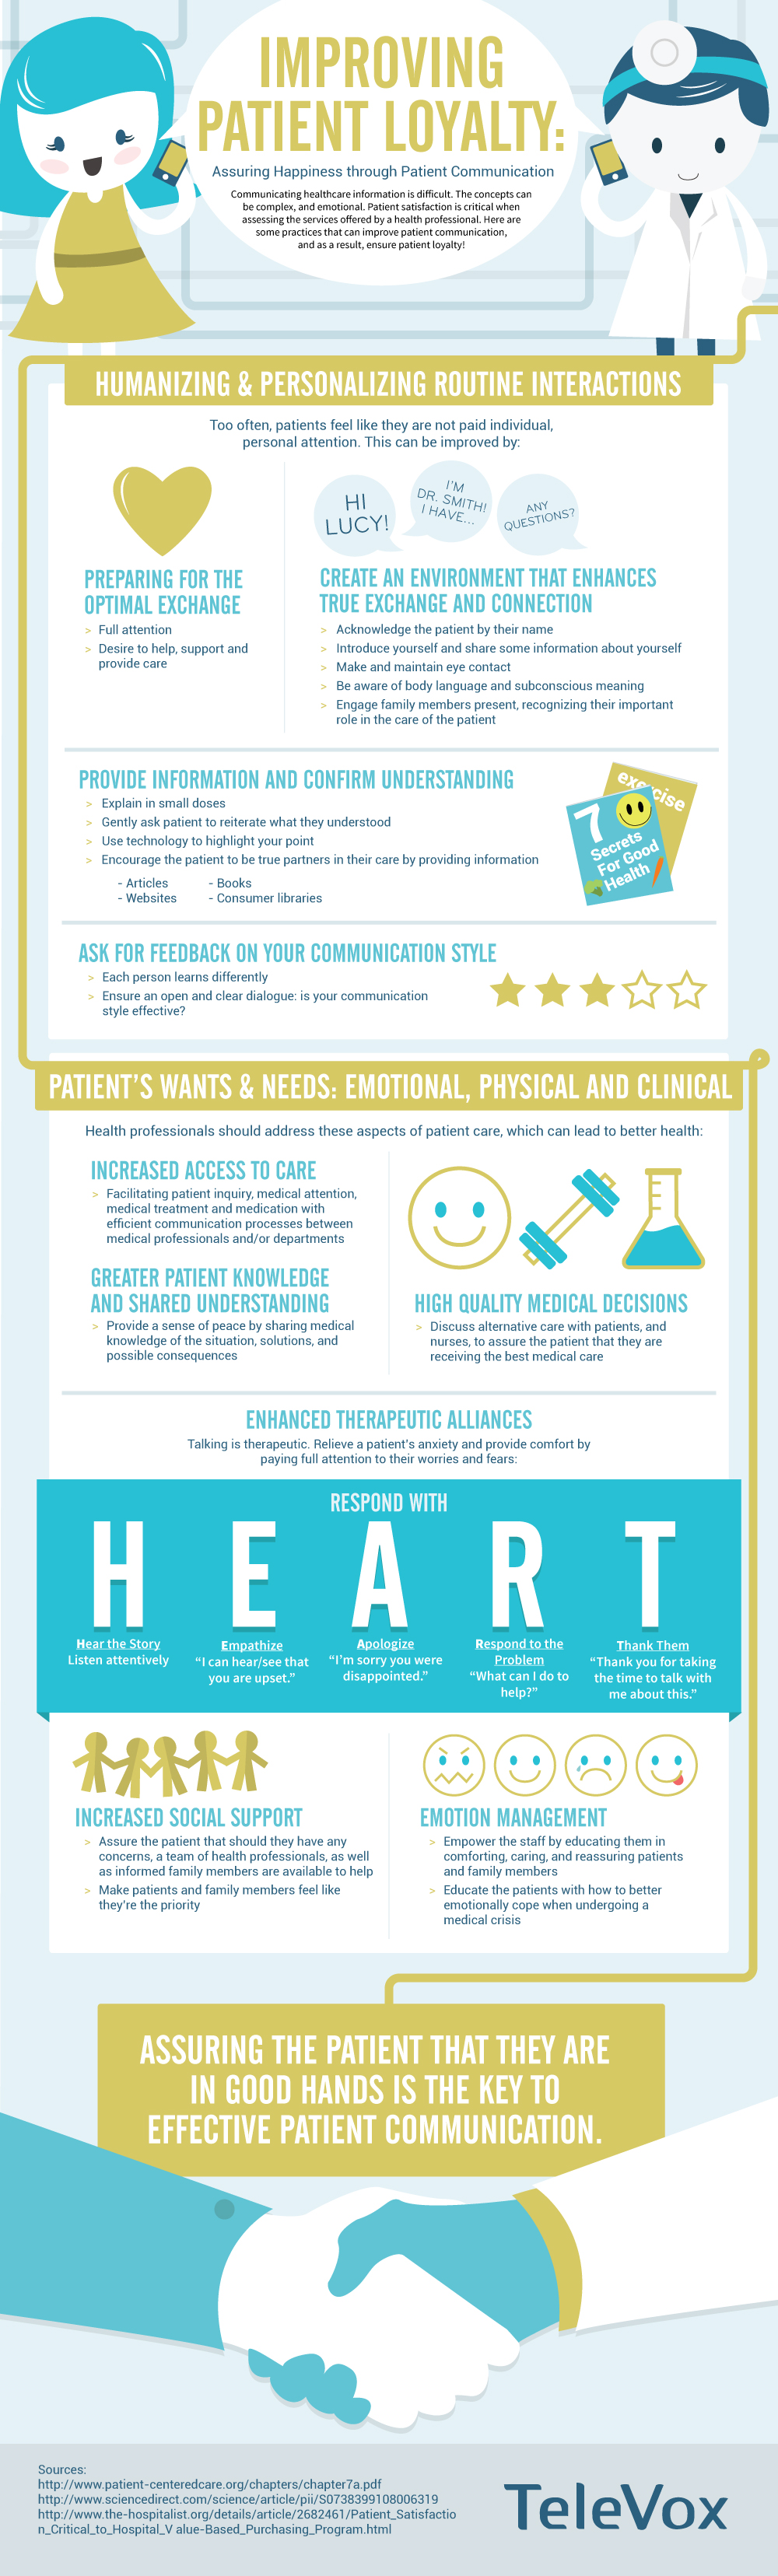 Improving Patient Loyalty